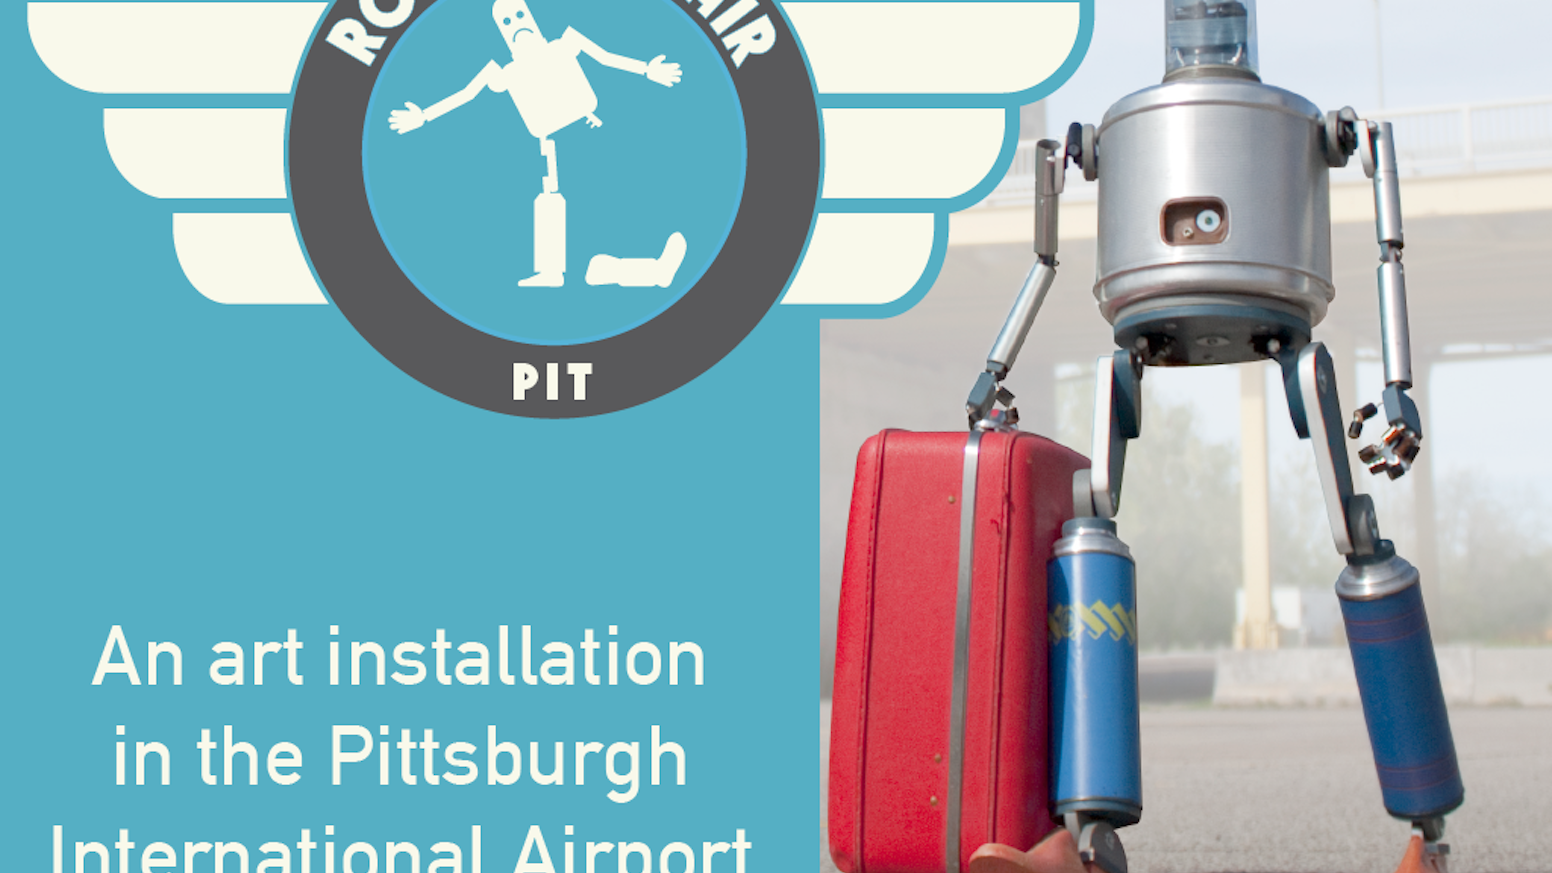 Reimagining and rebuilding the public art installation, Fraley's Robot Repair, in the Pittsburgh International Airport. #PITRobotRepair